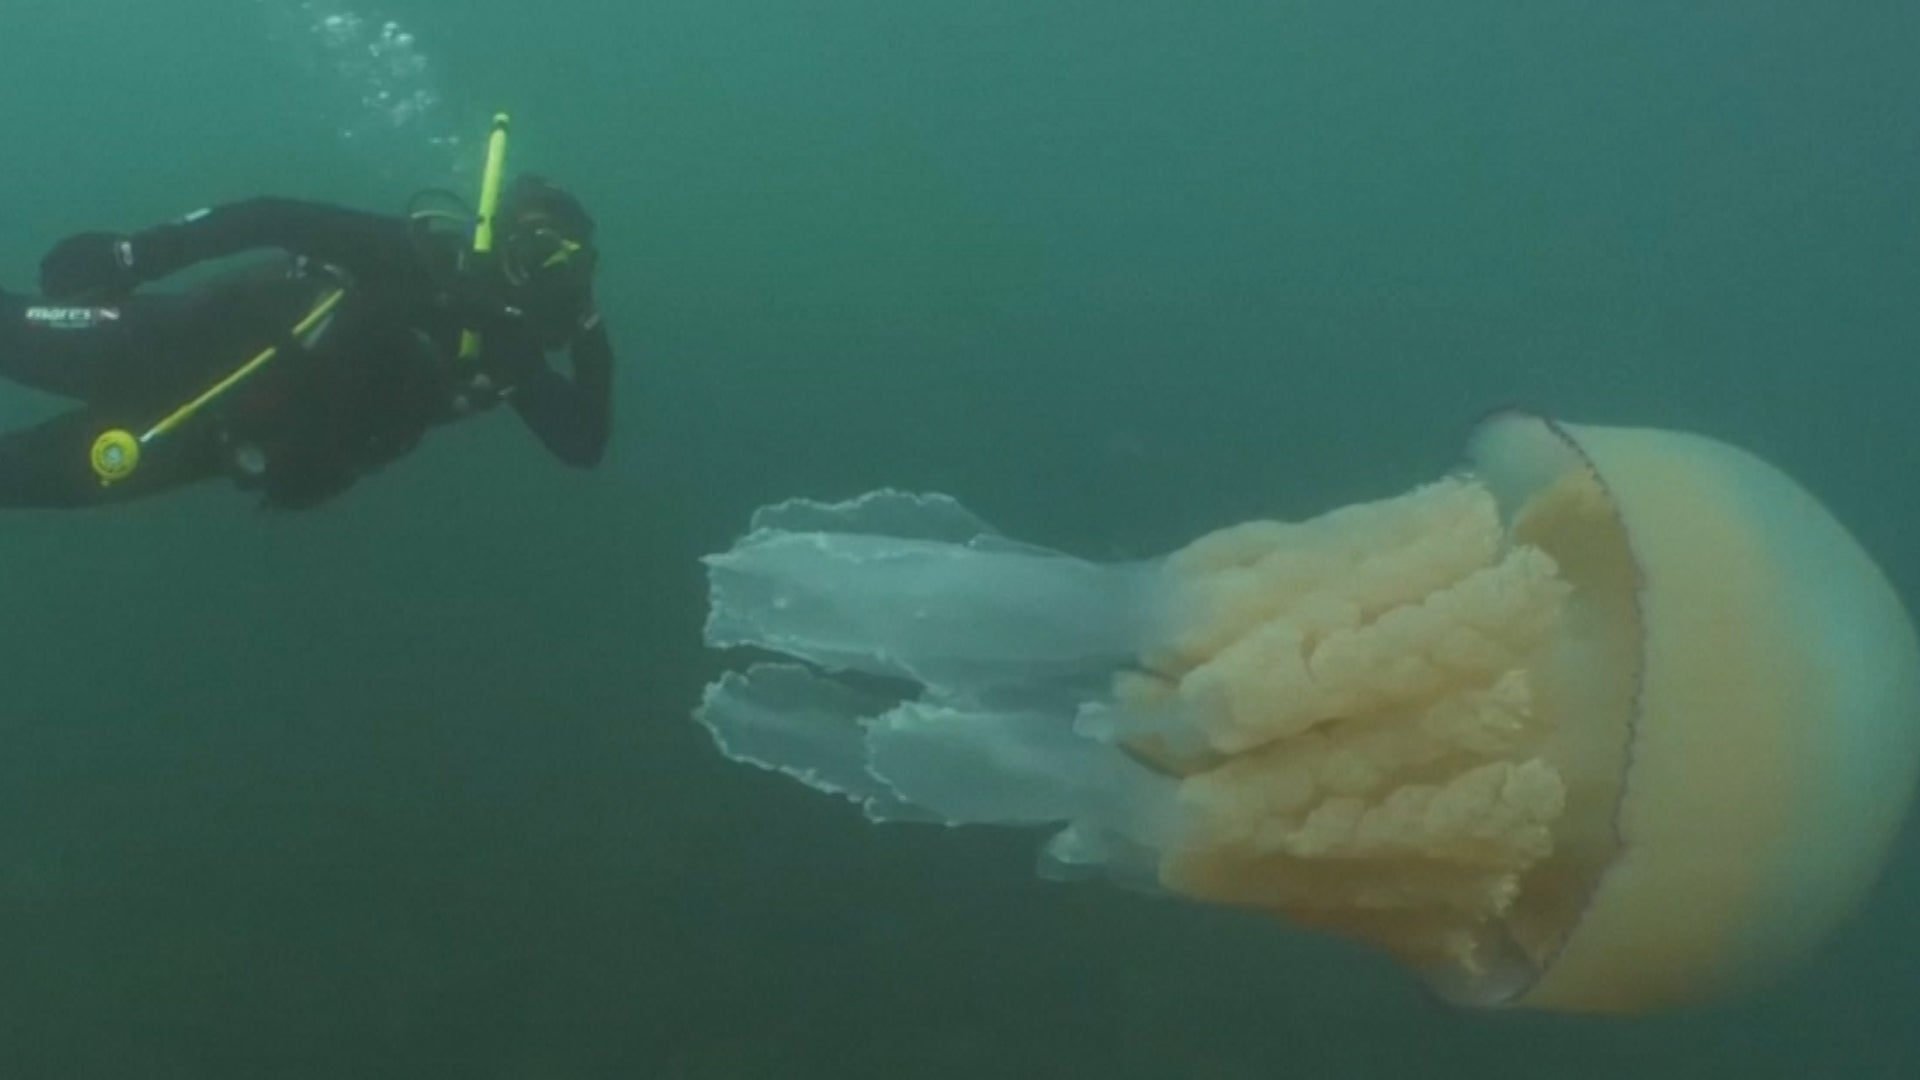 Barrel jellyfish are the largest in the waters off the U.K. But this one takes the cake!